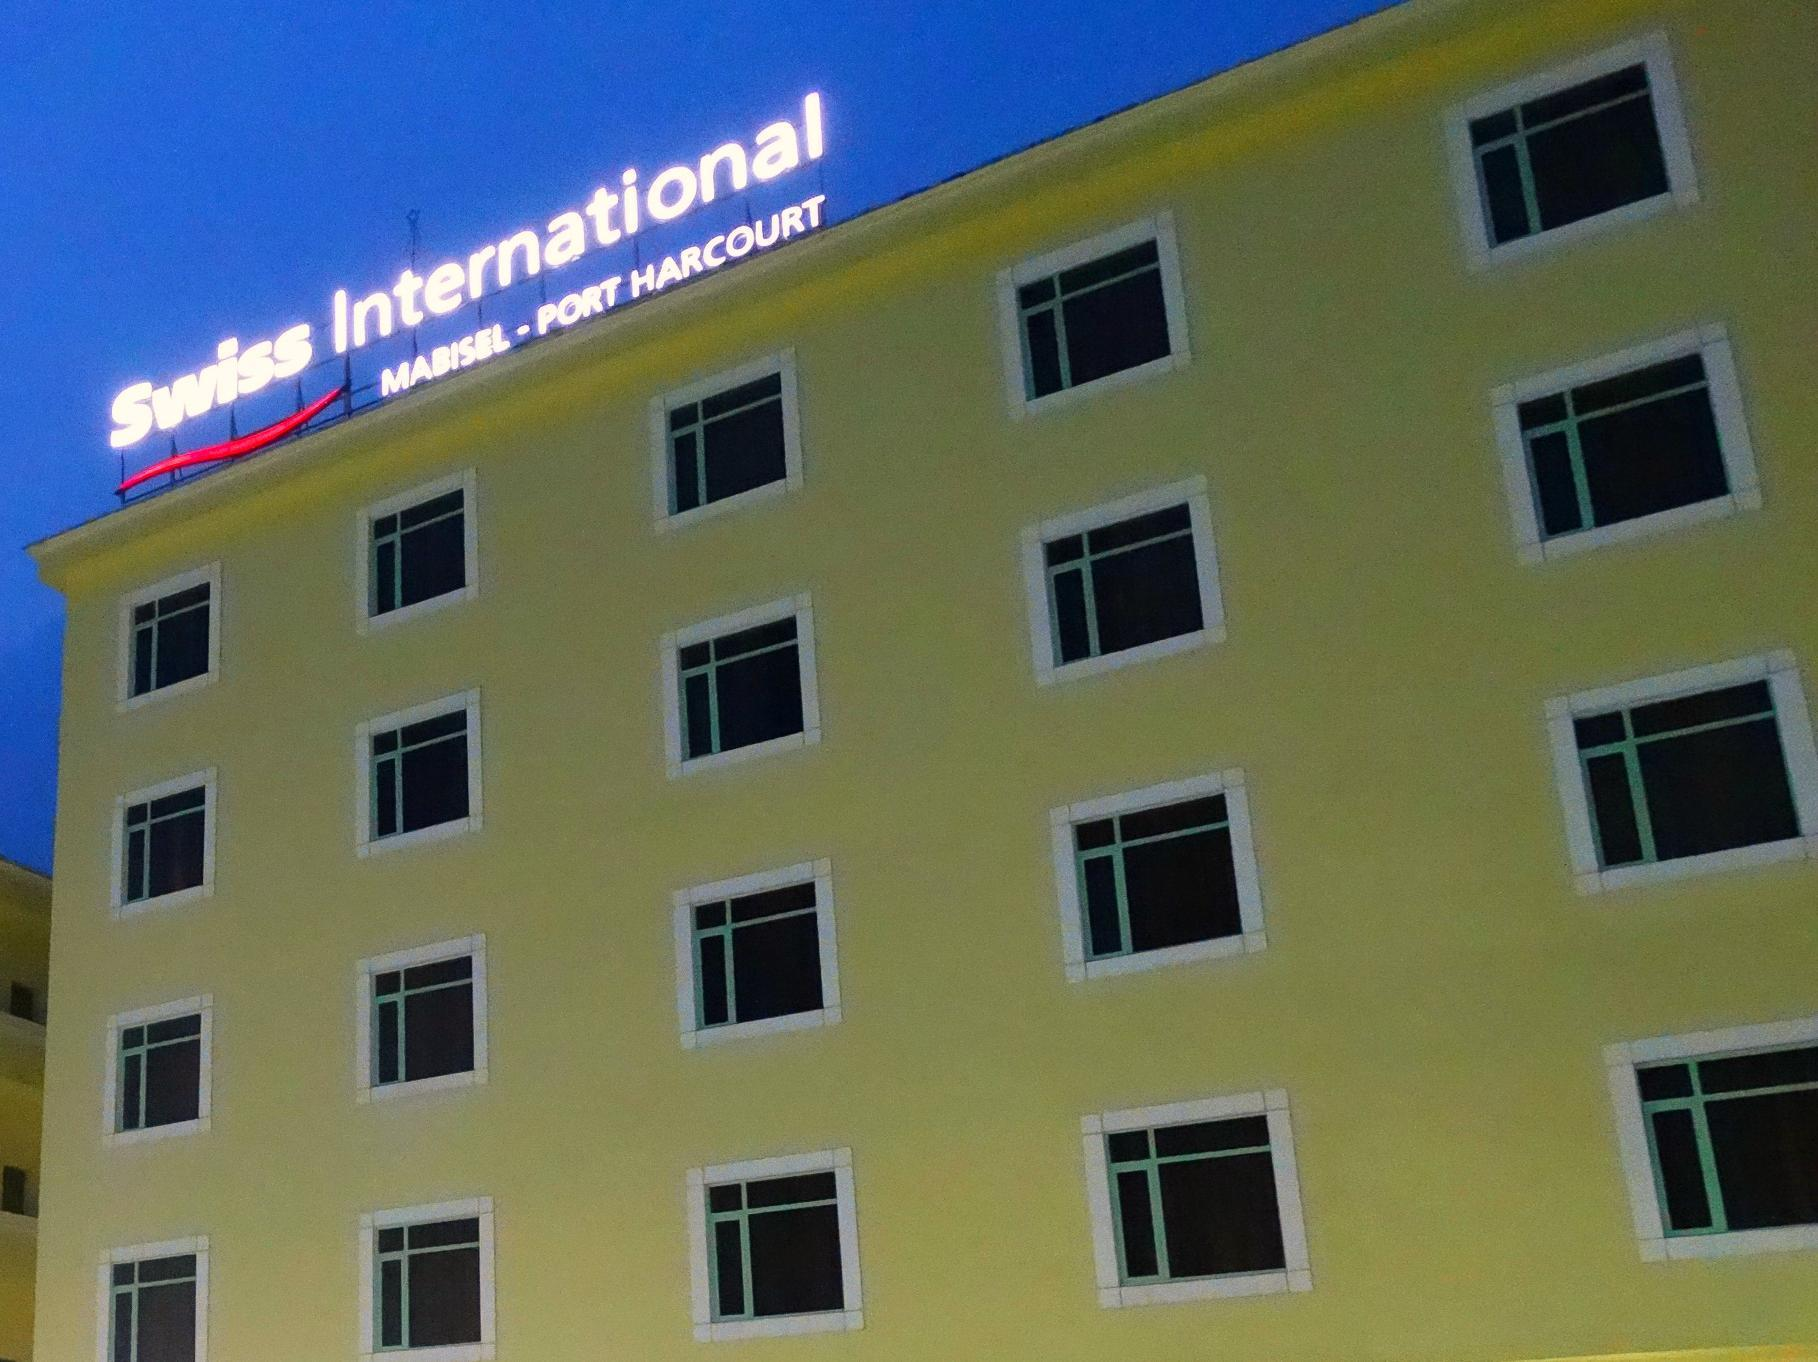 Swiss International Mabisel Port Harcourt, Obio/Akp